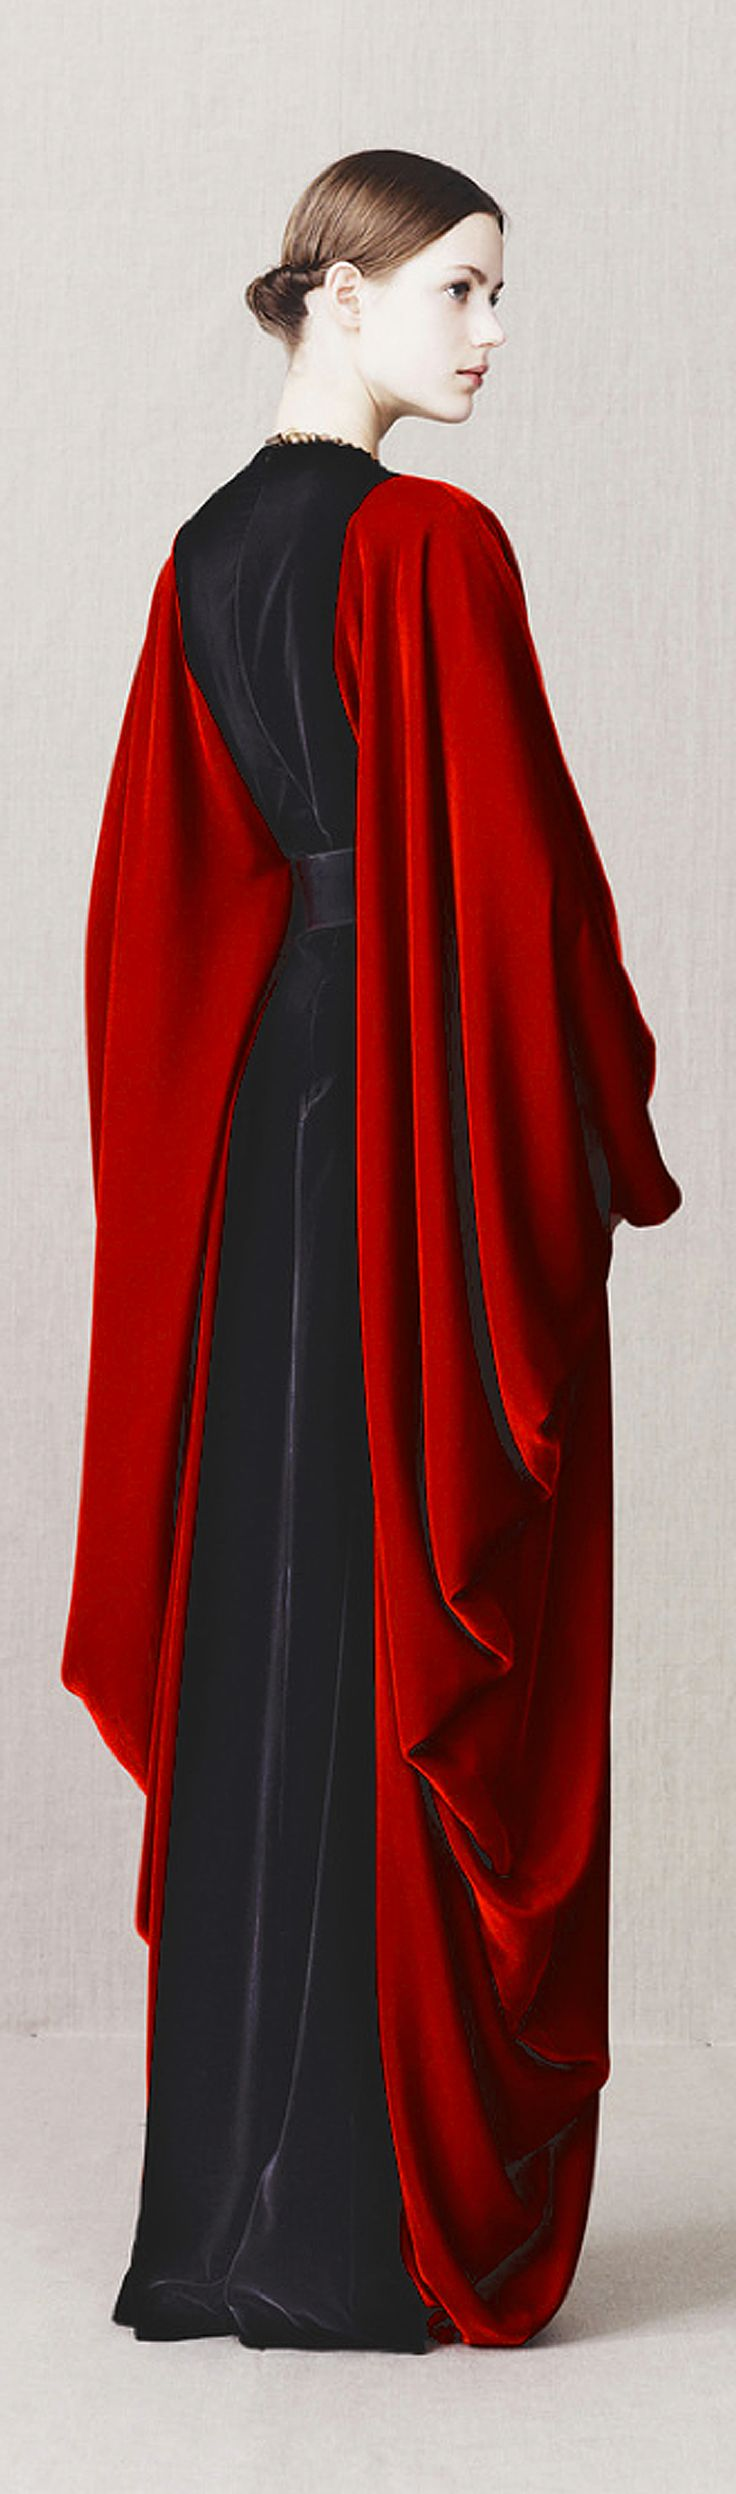 Goth: The #Undead ~ Gown by Alexander McQueen Pre-Fall 2013 ~Très Haute Diva.